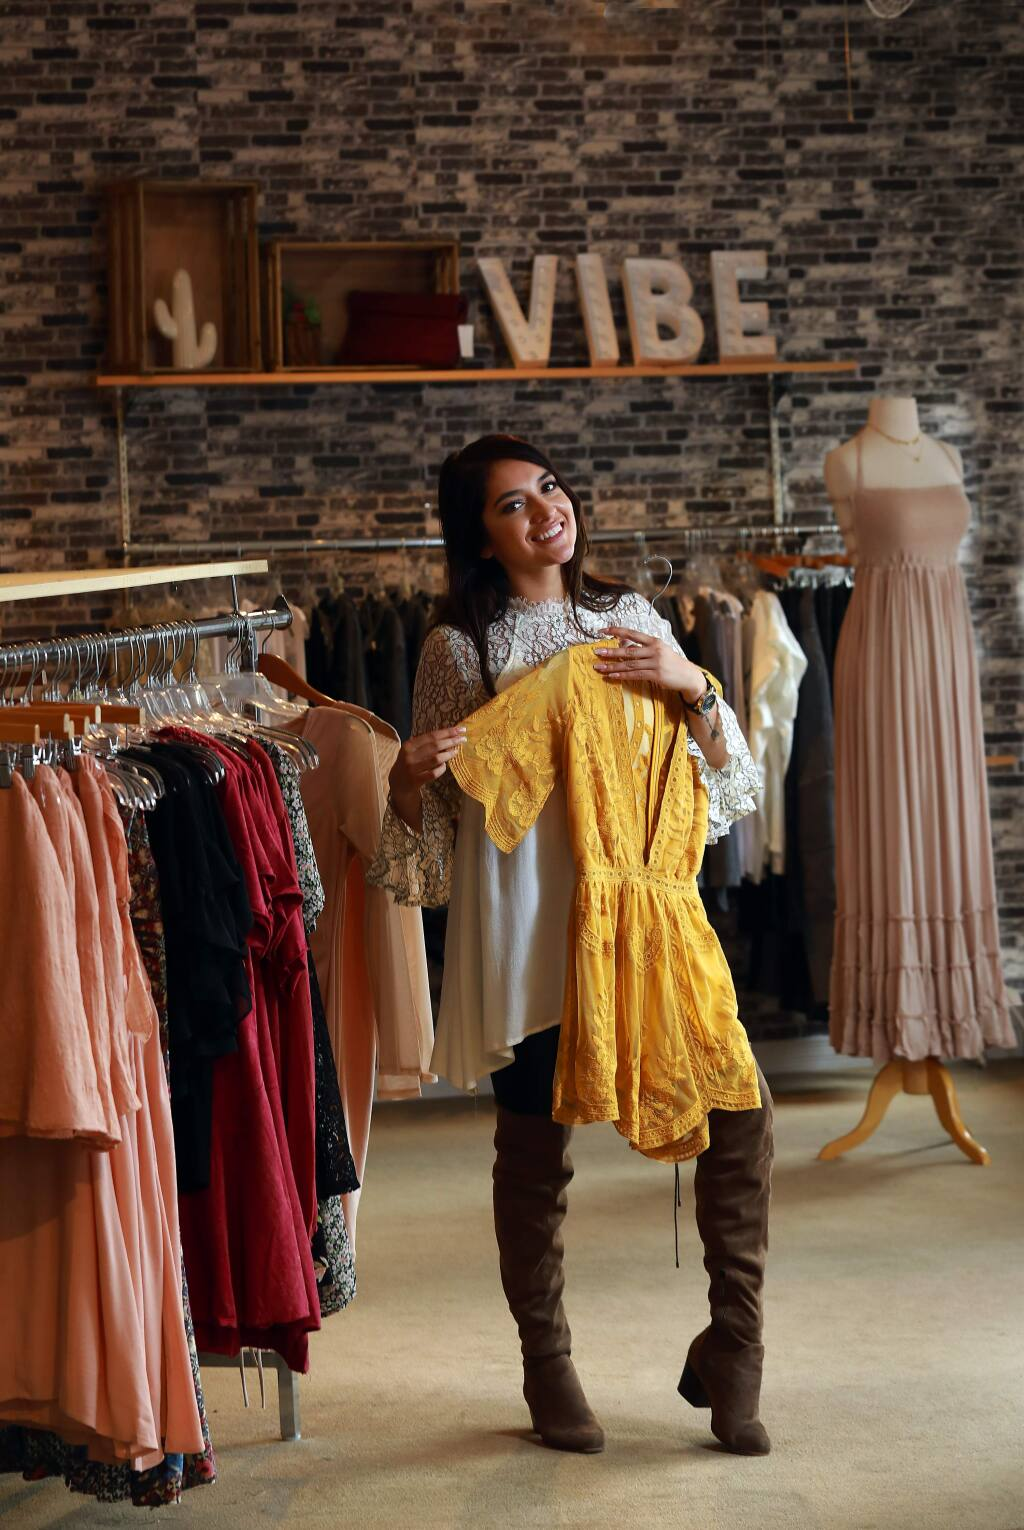 Latina entrepreneur and self-described fashionista Mercedes Hernandez, 22, opened Bow N Arrow Clothing in downtown Cotati last year. (John Burgess/The Press Democrat)